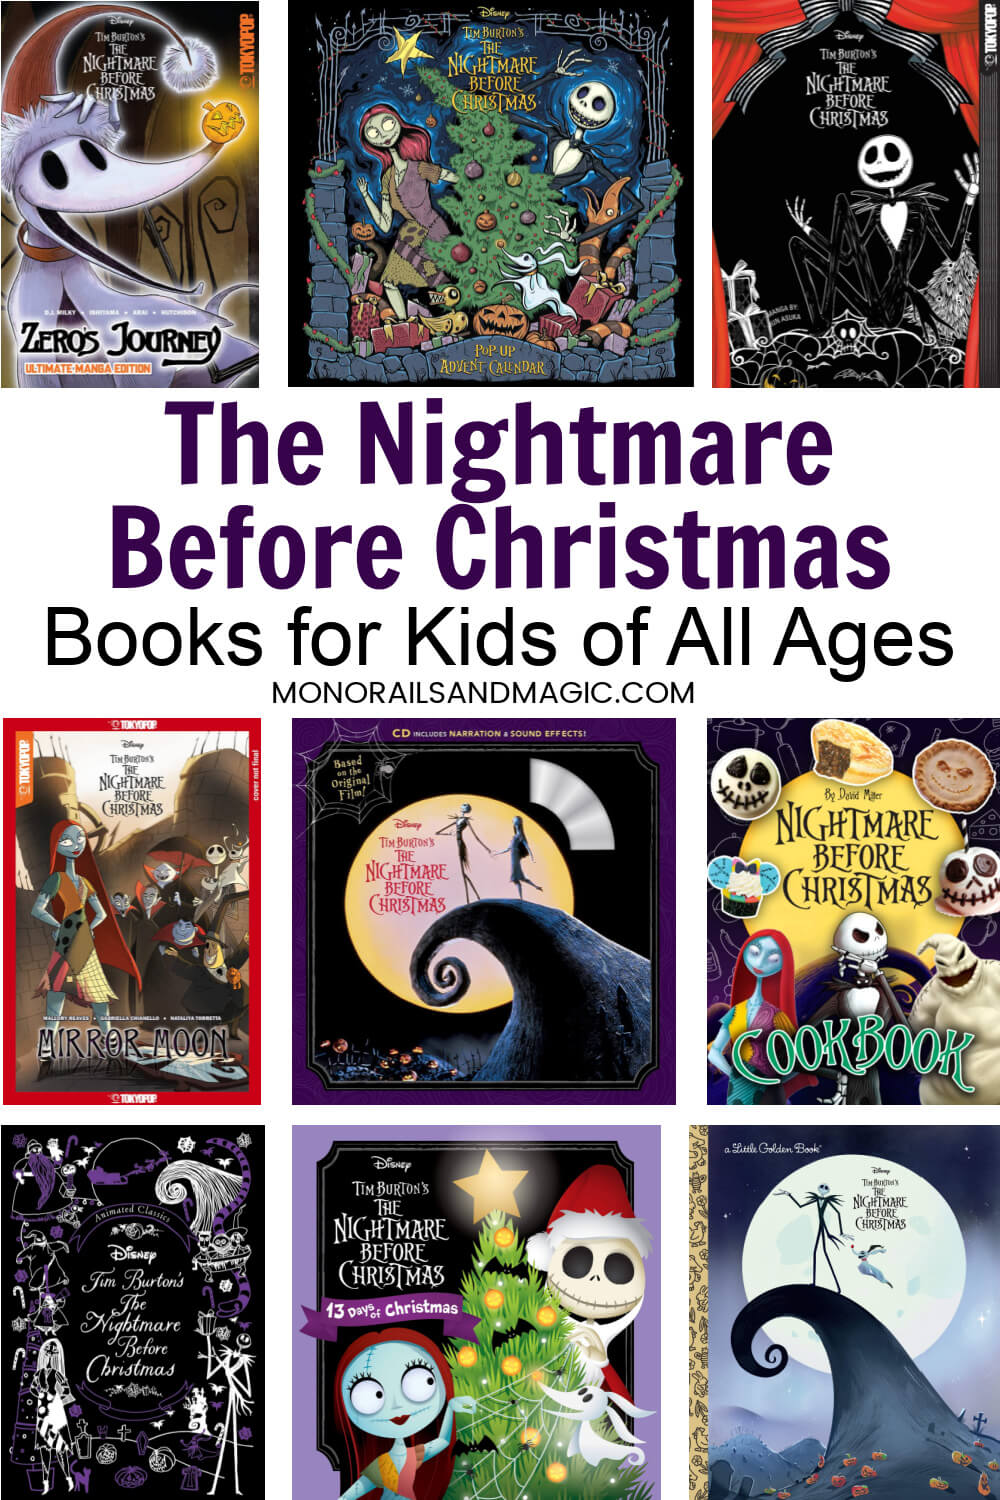 Tons of fun The Nightmare Before Christmas books for kids of all ages. Great for fans of this Disney cult classic.